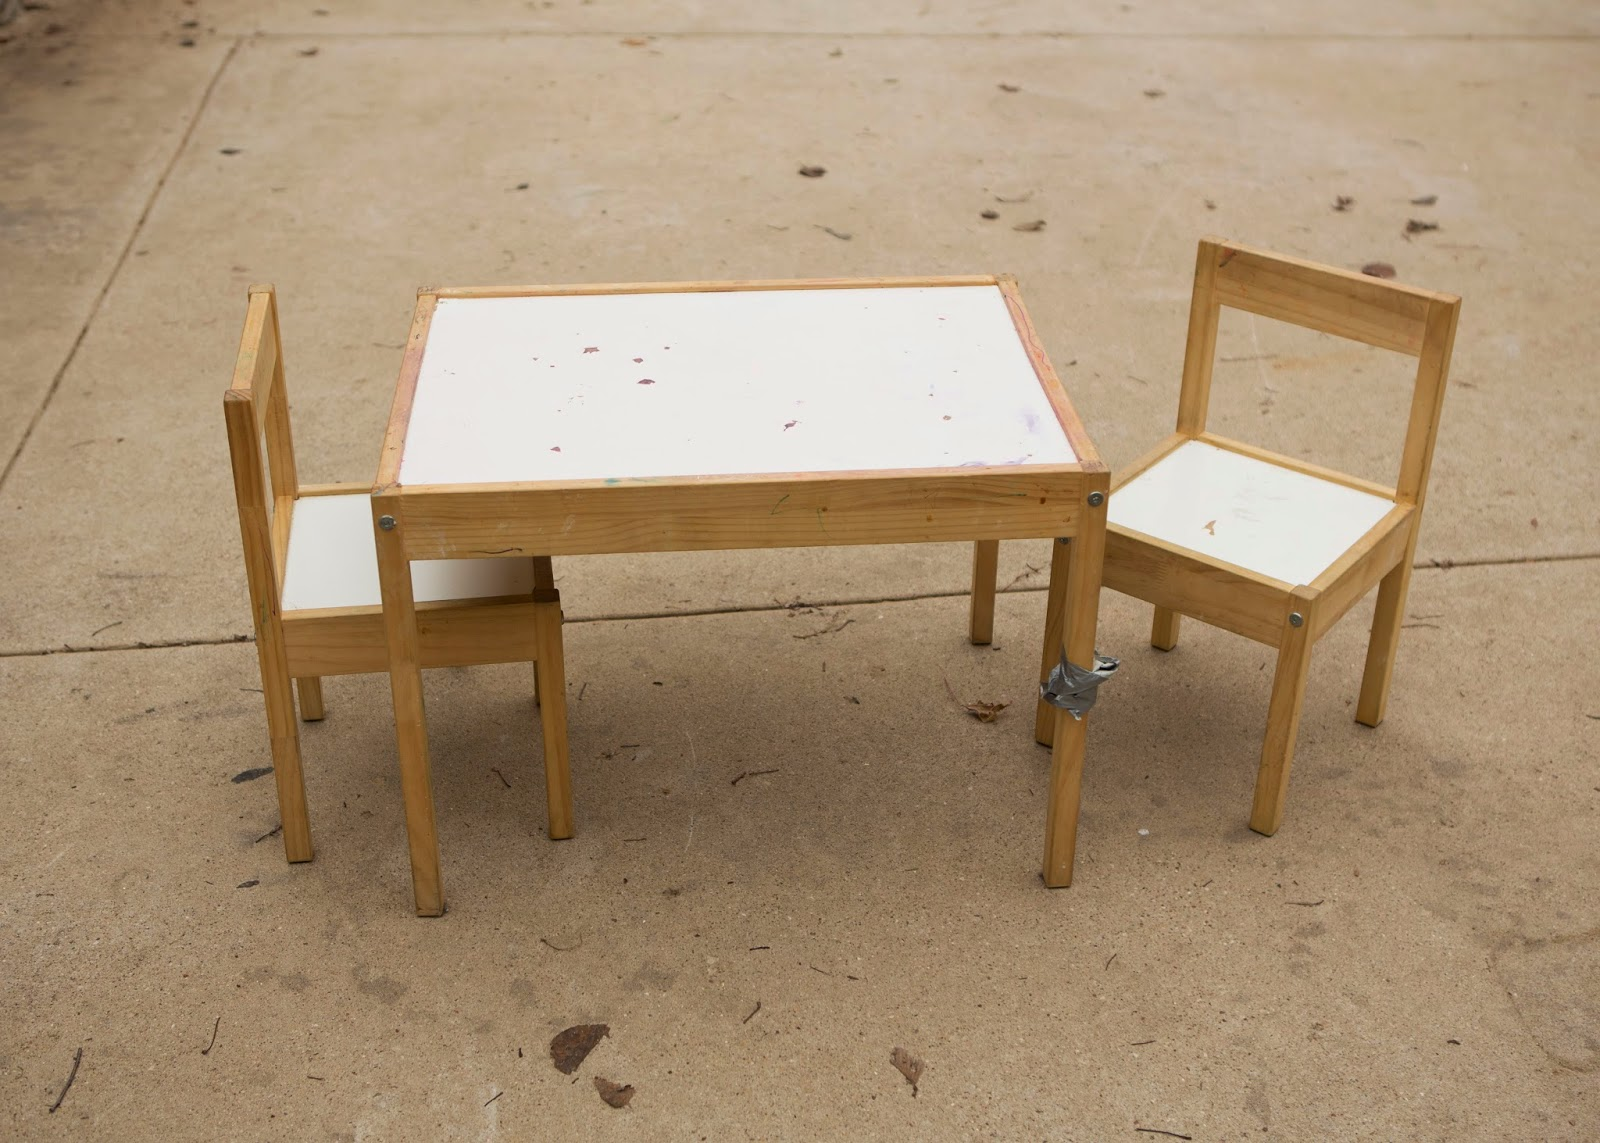 particle wood furniture. The Particle Board Top Was Bubbling Up And Would Not Get Clean, Legs, Sides Chairs Had Paint Color Marks, Whole Table Seen Better Wood Furniture B